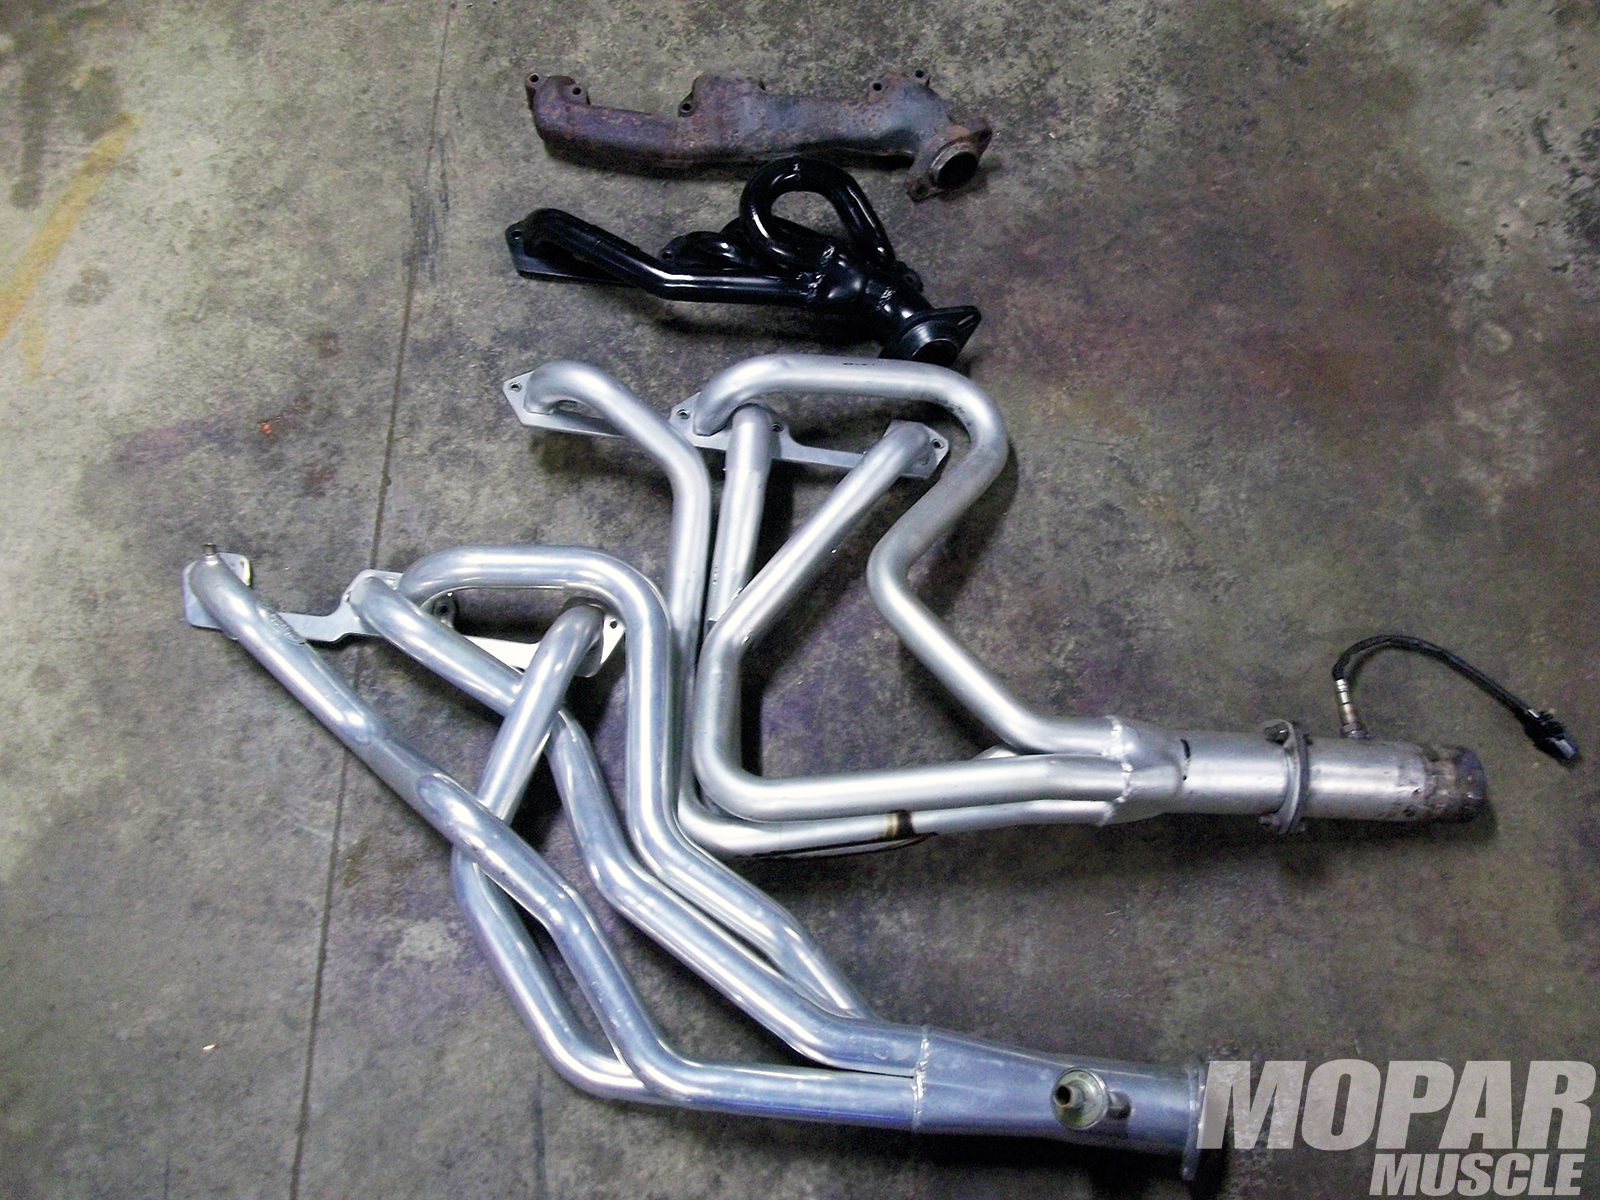 2. From top to bottom, 360 Magnum manifolds, PaceSetter shorty Magnum headers with 11⁄2-inch primaries, Hooker small-tube headers with 15⁄8-inch primaries, and Hooker large-tube race headers with 13⁄4-inch primaries.